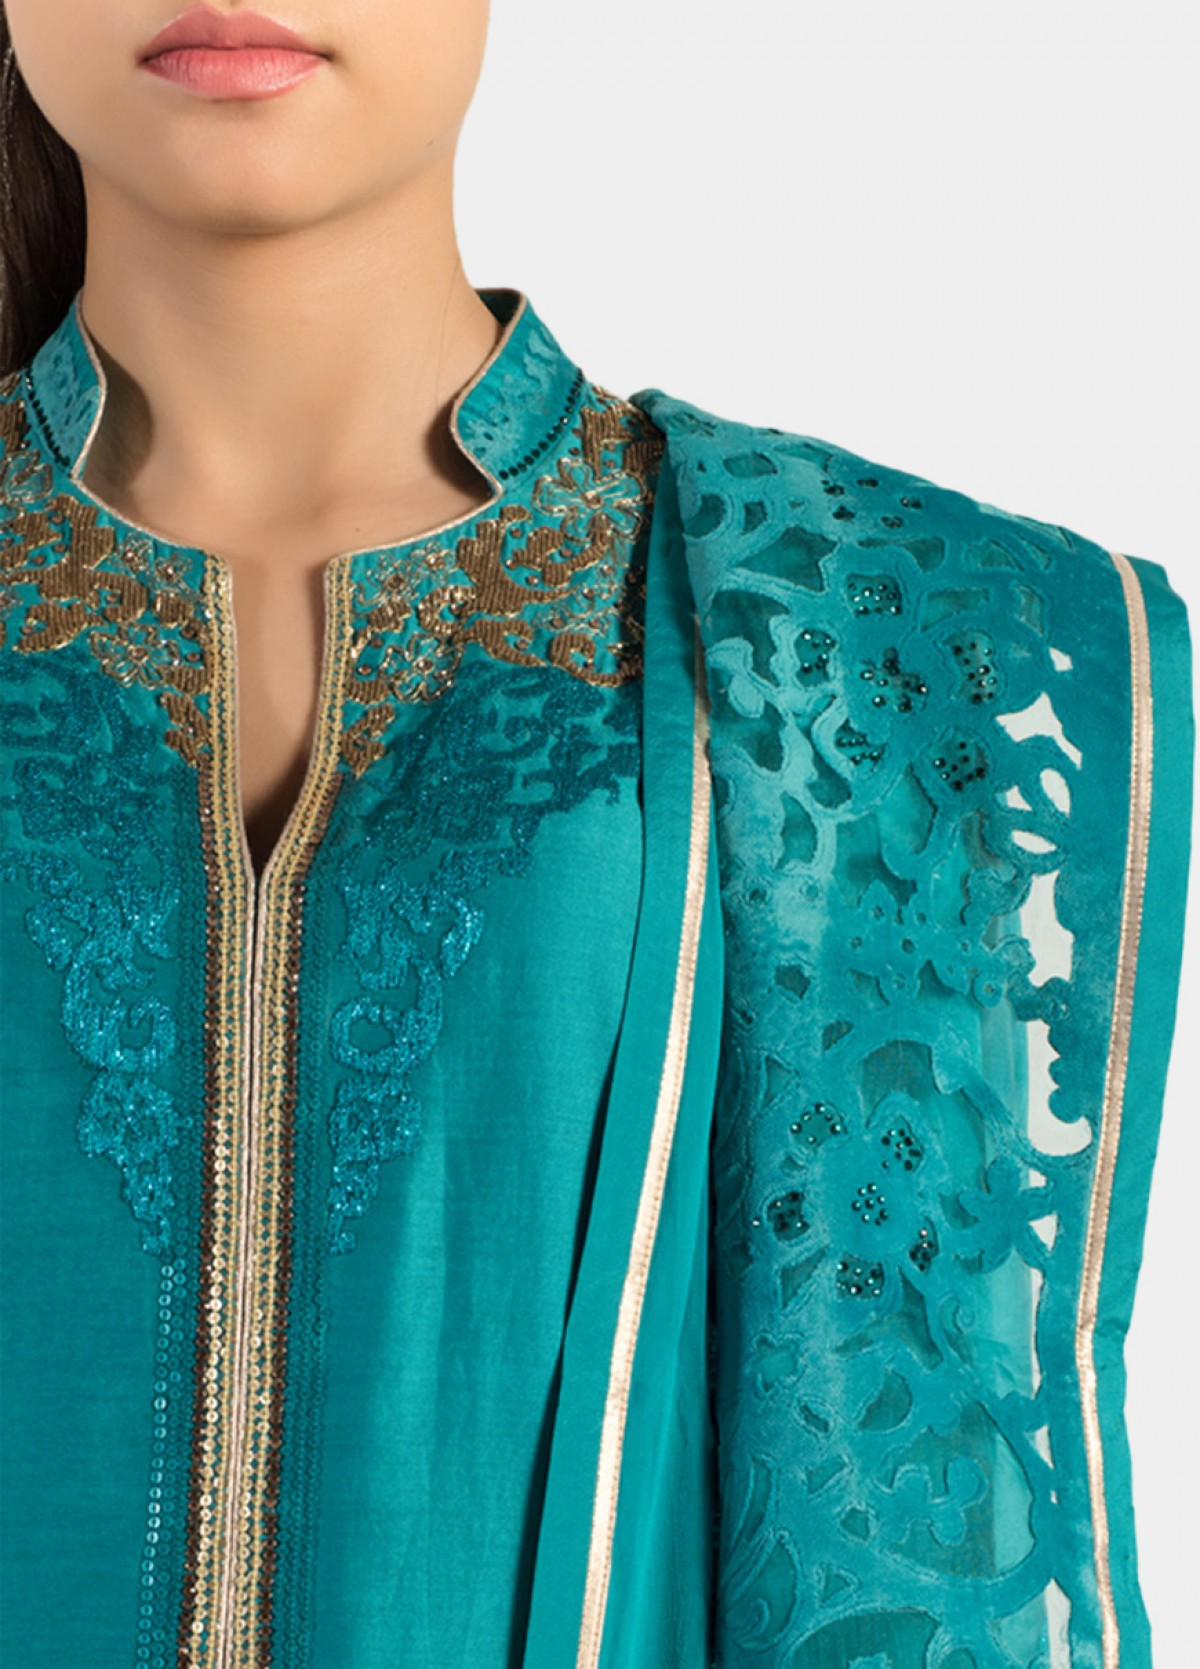 The Straight Cut Embroidered Suit